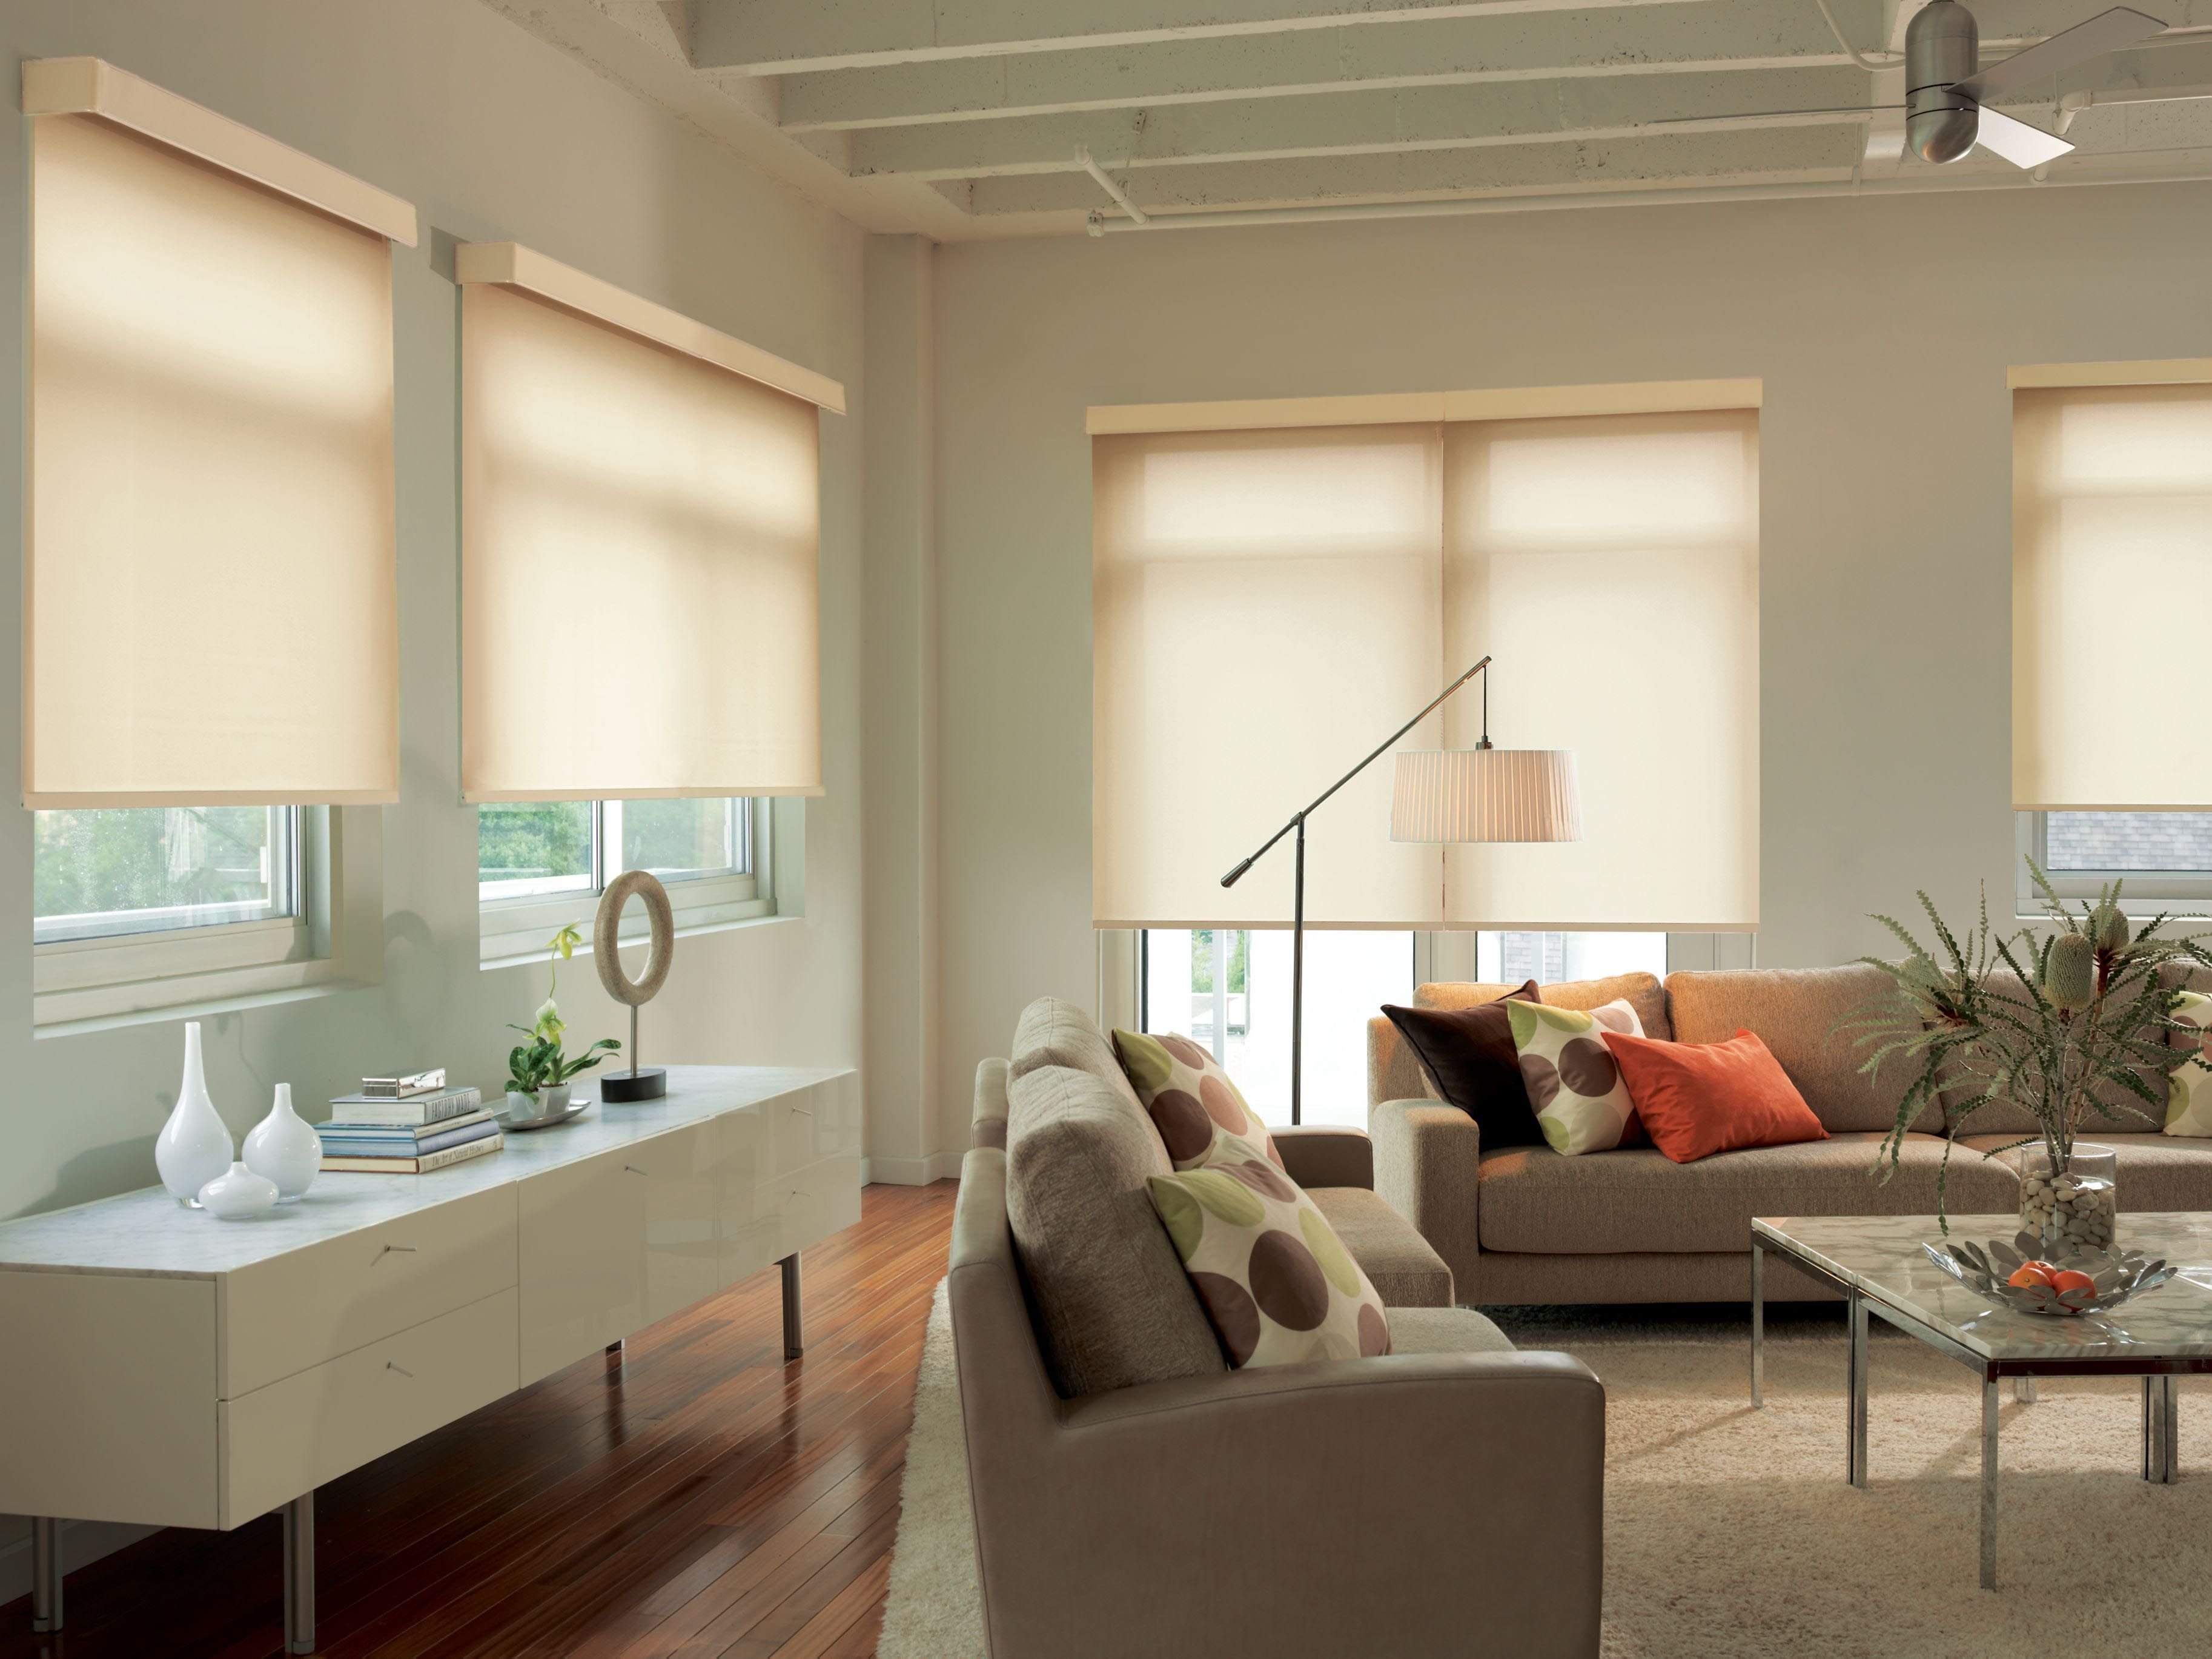 shade on blinds shipping shades trends attachment cordless bamboo over roman free rhoverstockcom ideas tortoise window natural orders